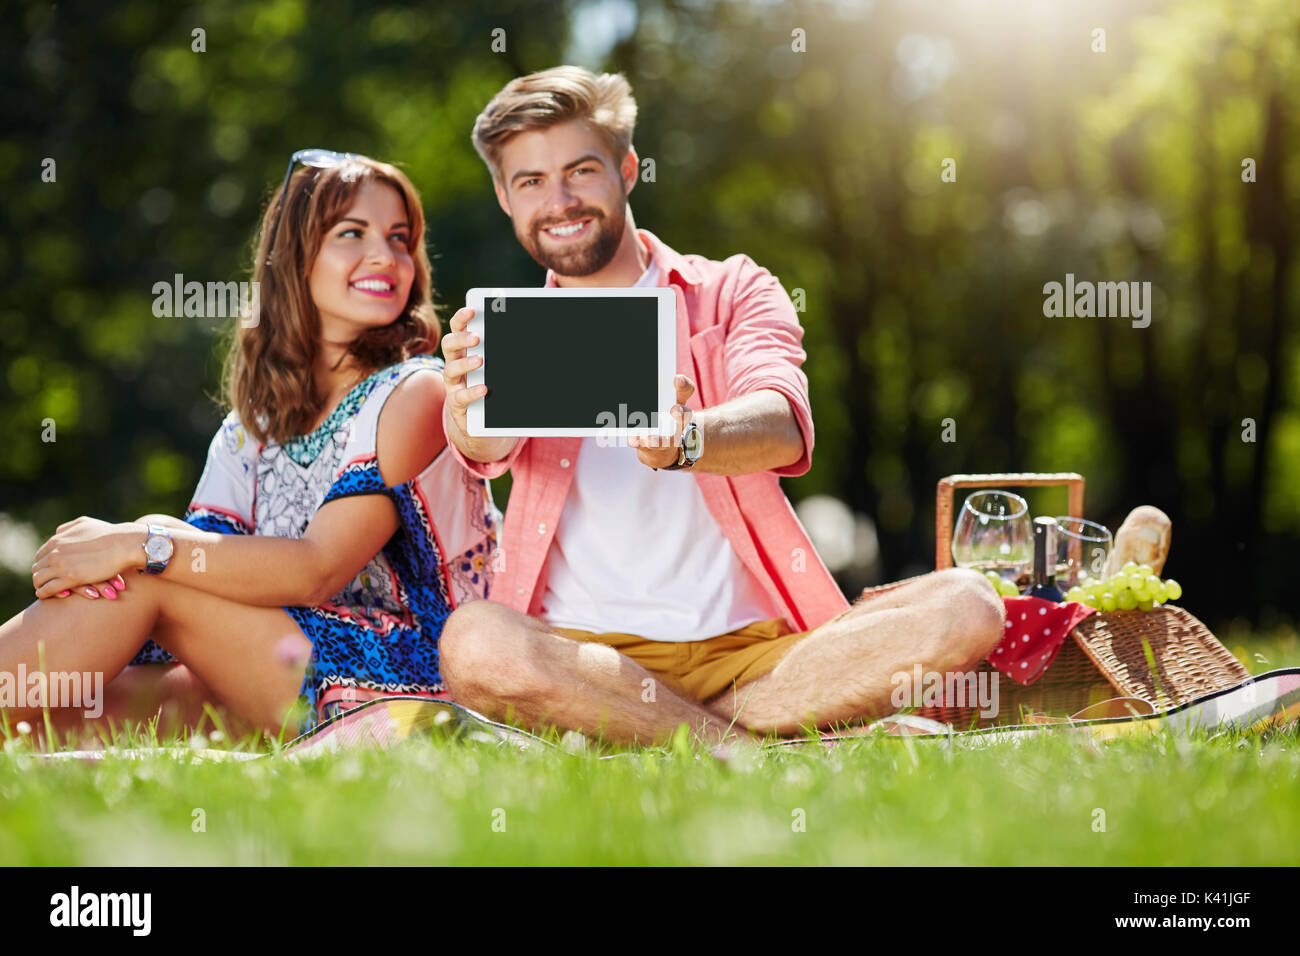 A photo of young, happy couple picnicking on the meadow. The man is holding his newest tablet. - Stock Image